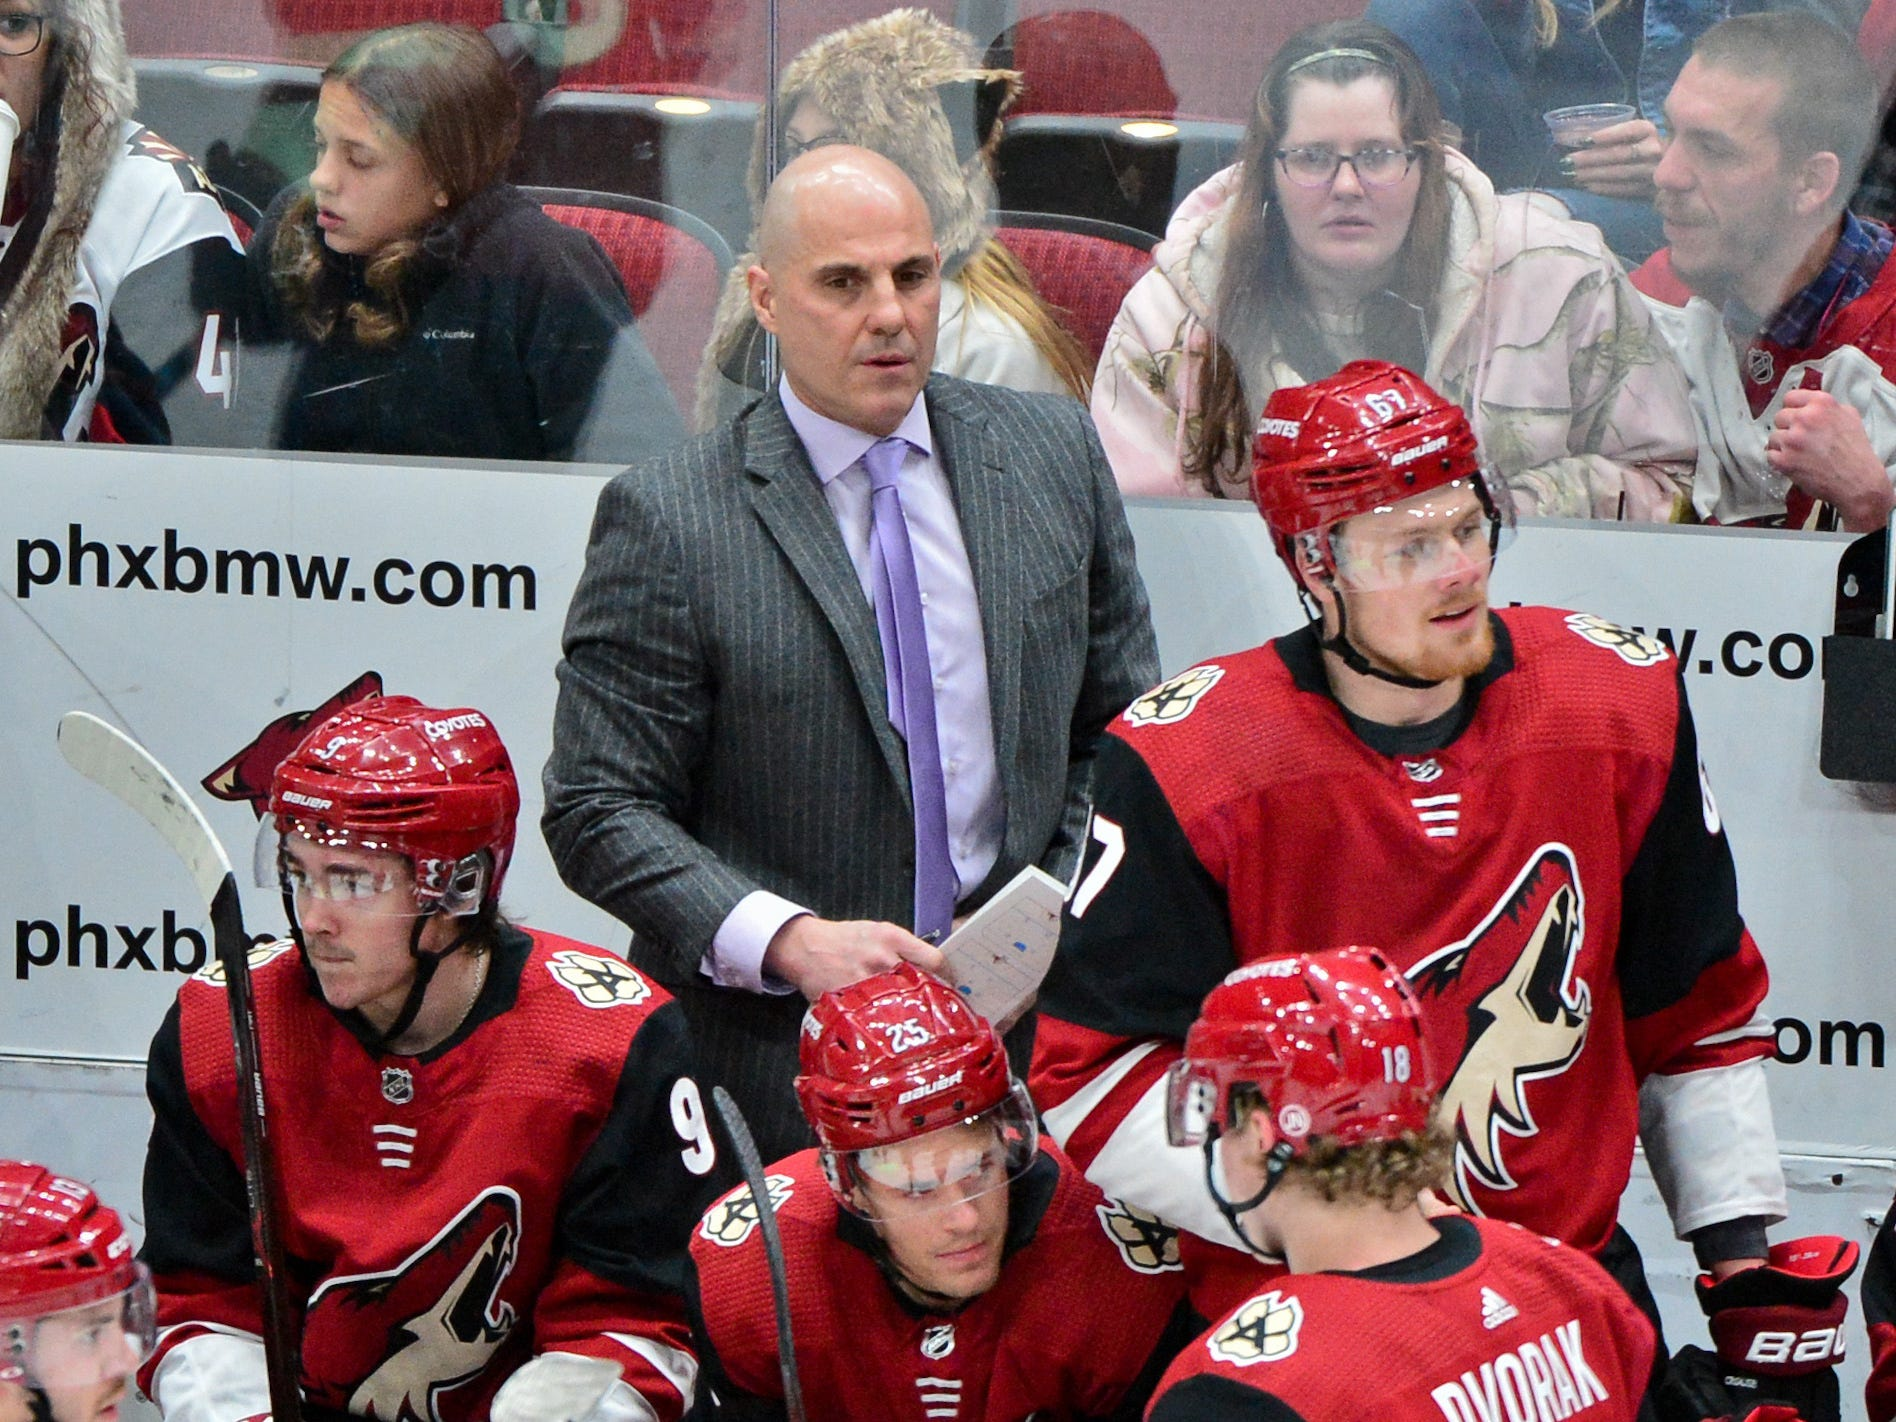 Feb 28, 2019; Glendale, AZ, USA; Arizona Coyotes head coach Rick Tocchet looks on during the first period against the Vancouver Canucks at Gila River Arena.